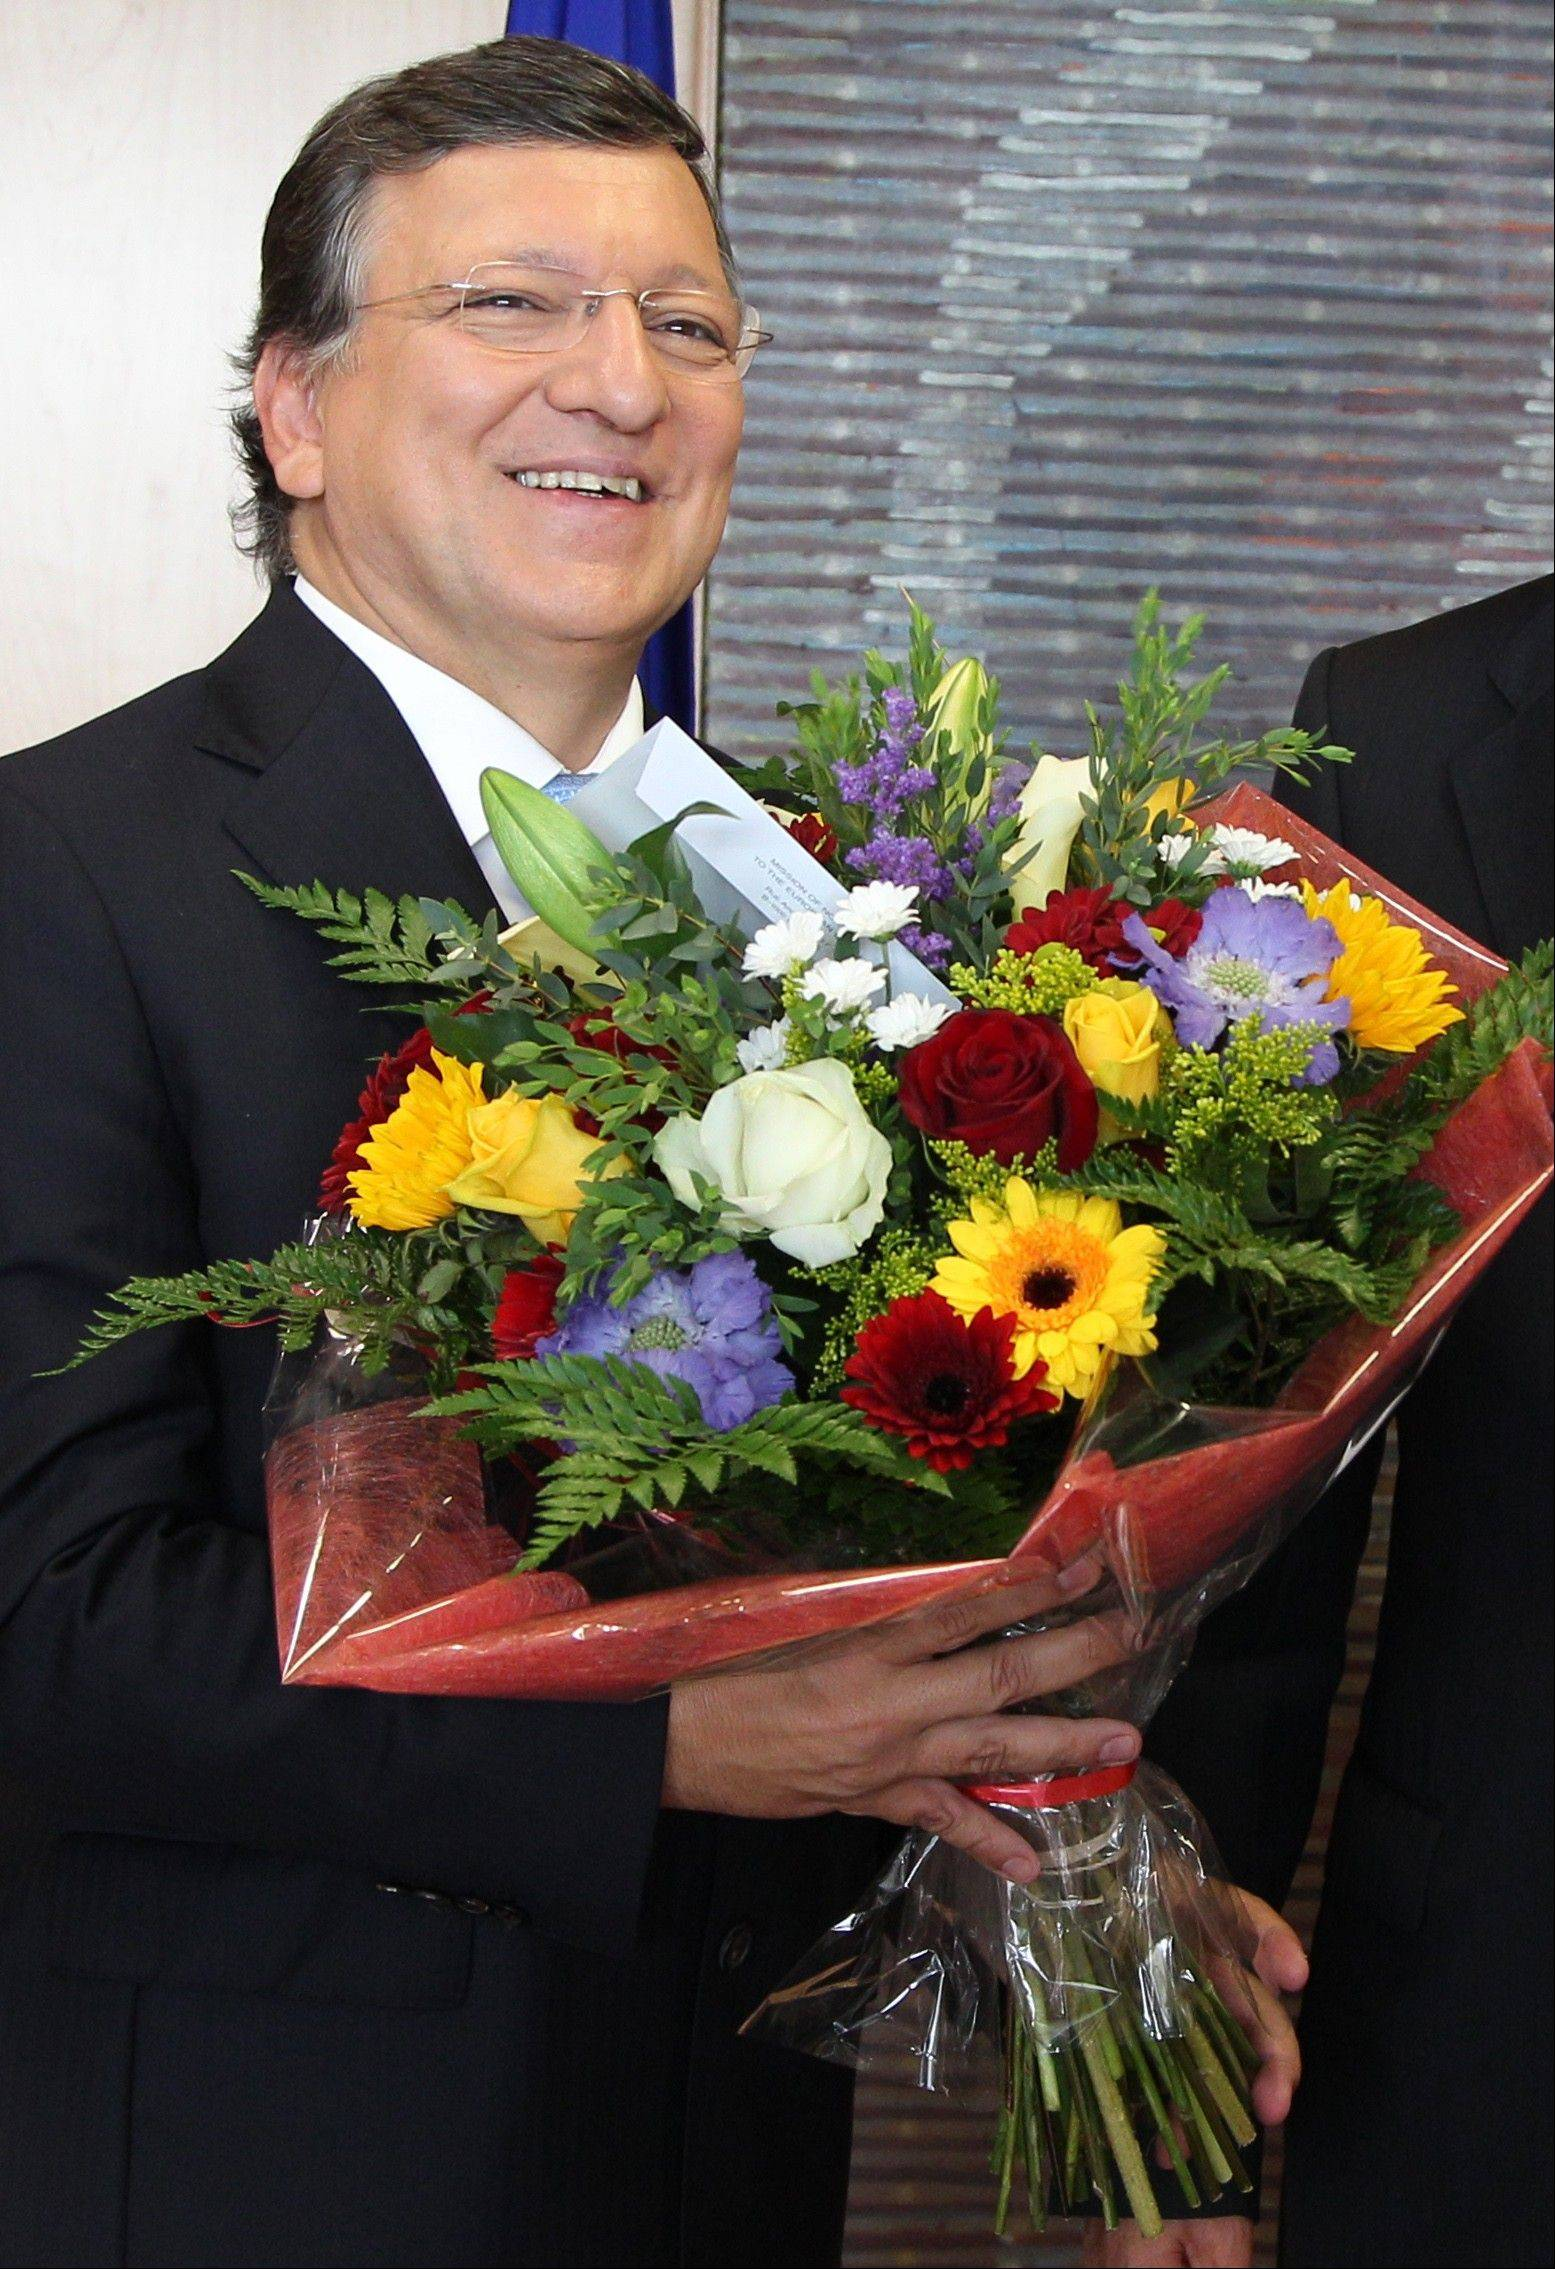 European Commission President Jose Manuel Barroso reacts, as he received flowers by Norway's ambassador to the EU Atle Leikvoll, after the 2012 Nobel Peace Prize was given to the EU, at the European Commission headquarters in Brussels, Friday.